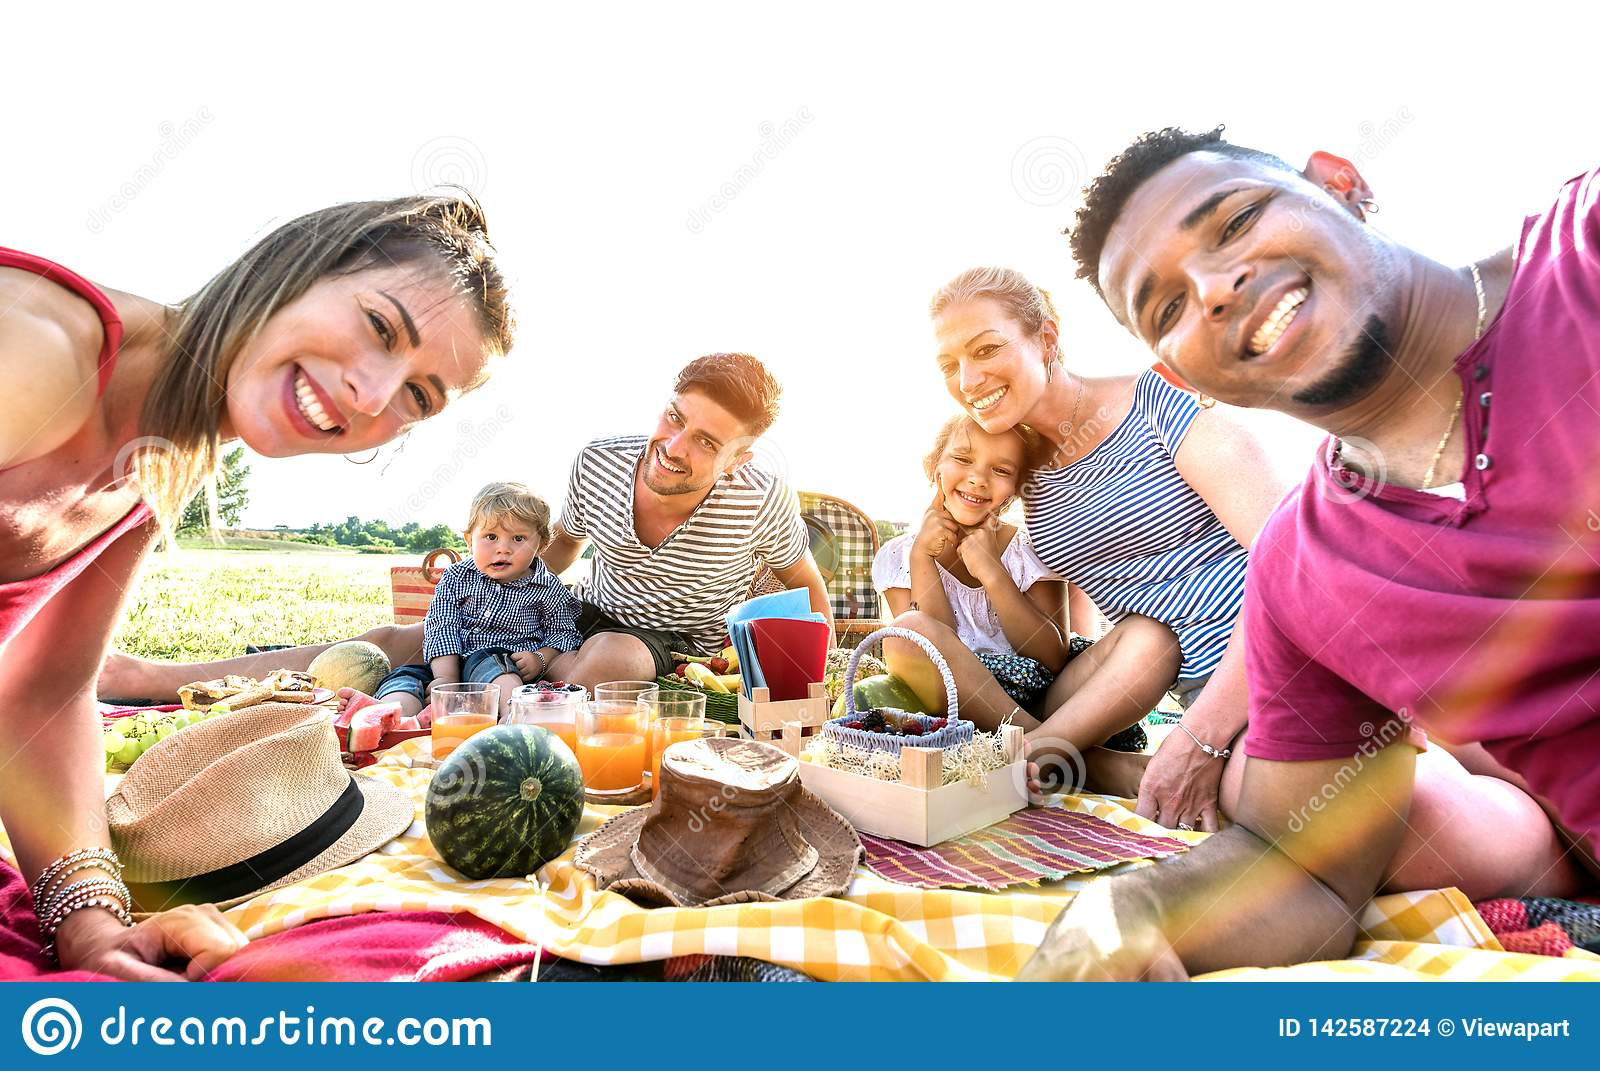 Happy multiracial families taking selfie at pic nic garden party - Multicultural joy and love concept with mixed race people